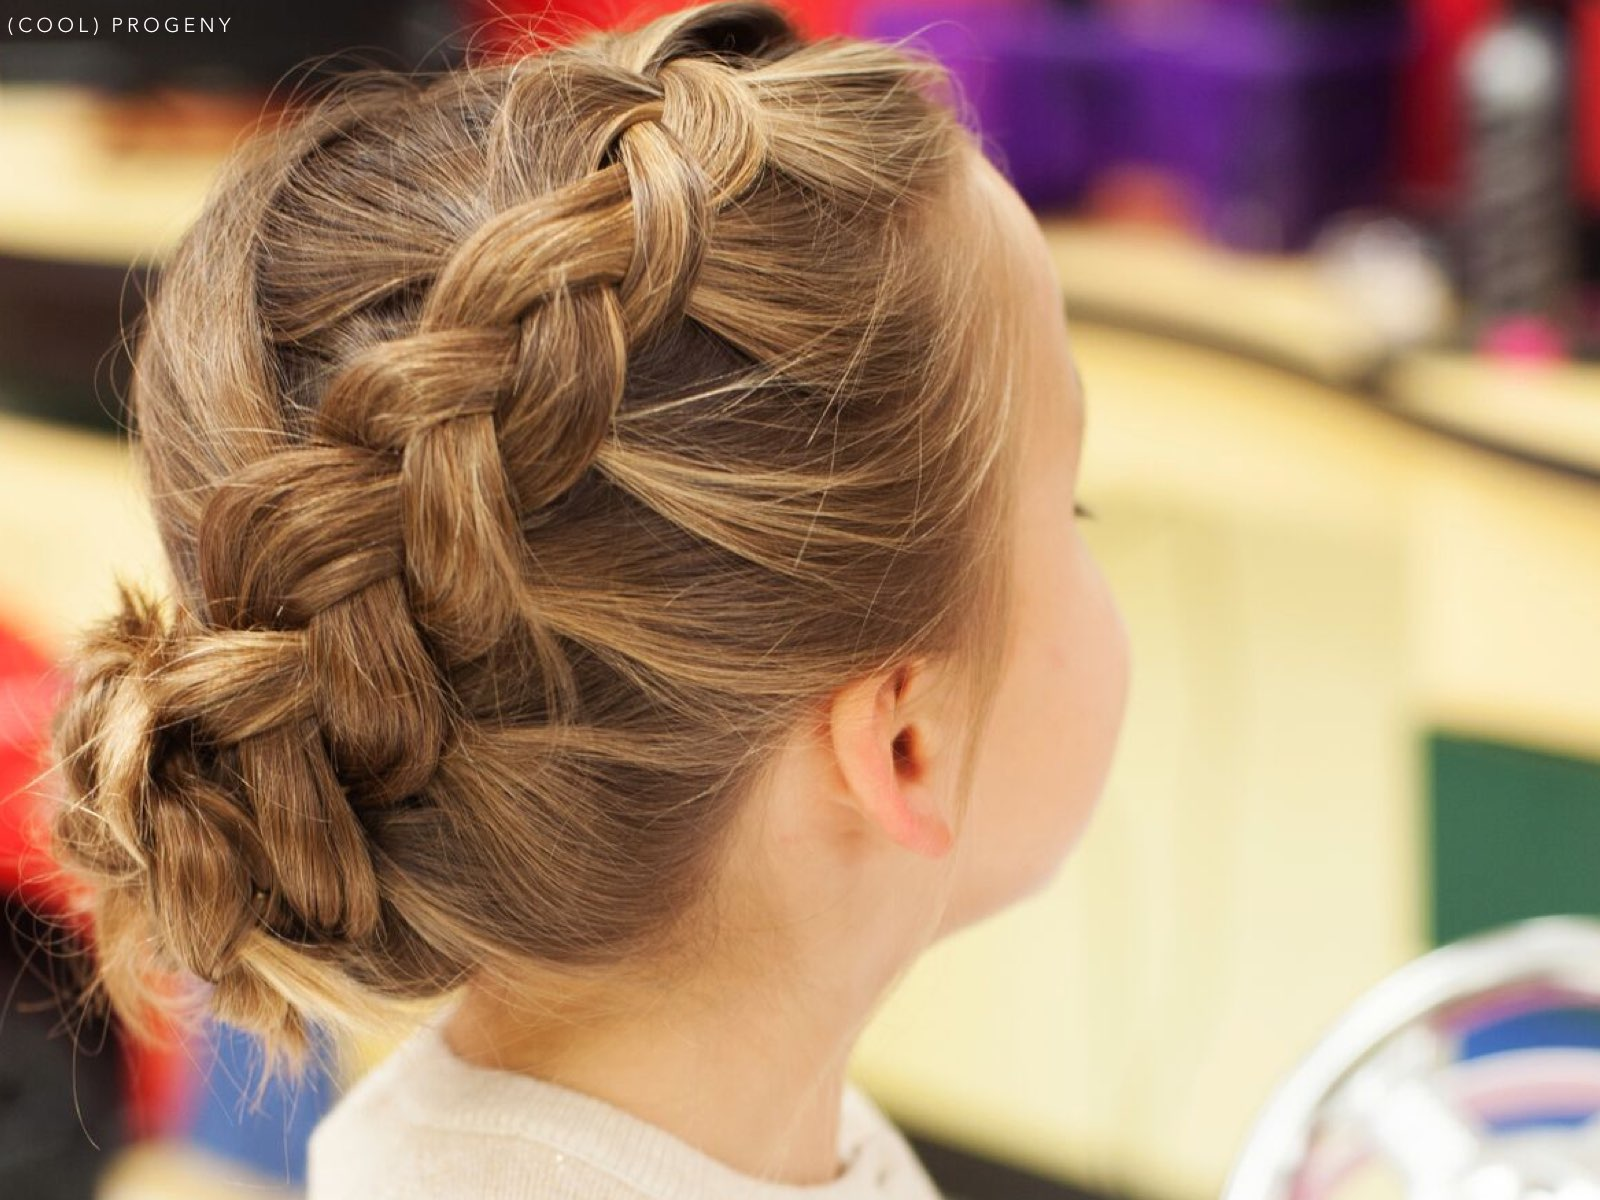 Holiday Hair Styles for Kids - (cool) progeny